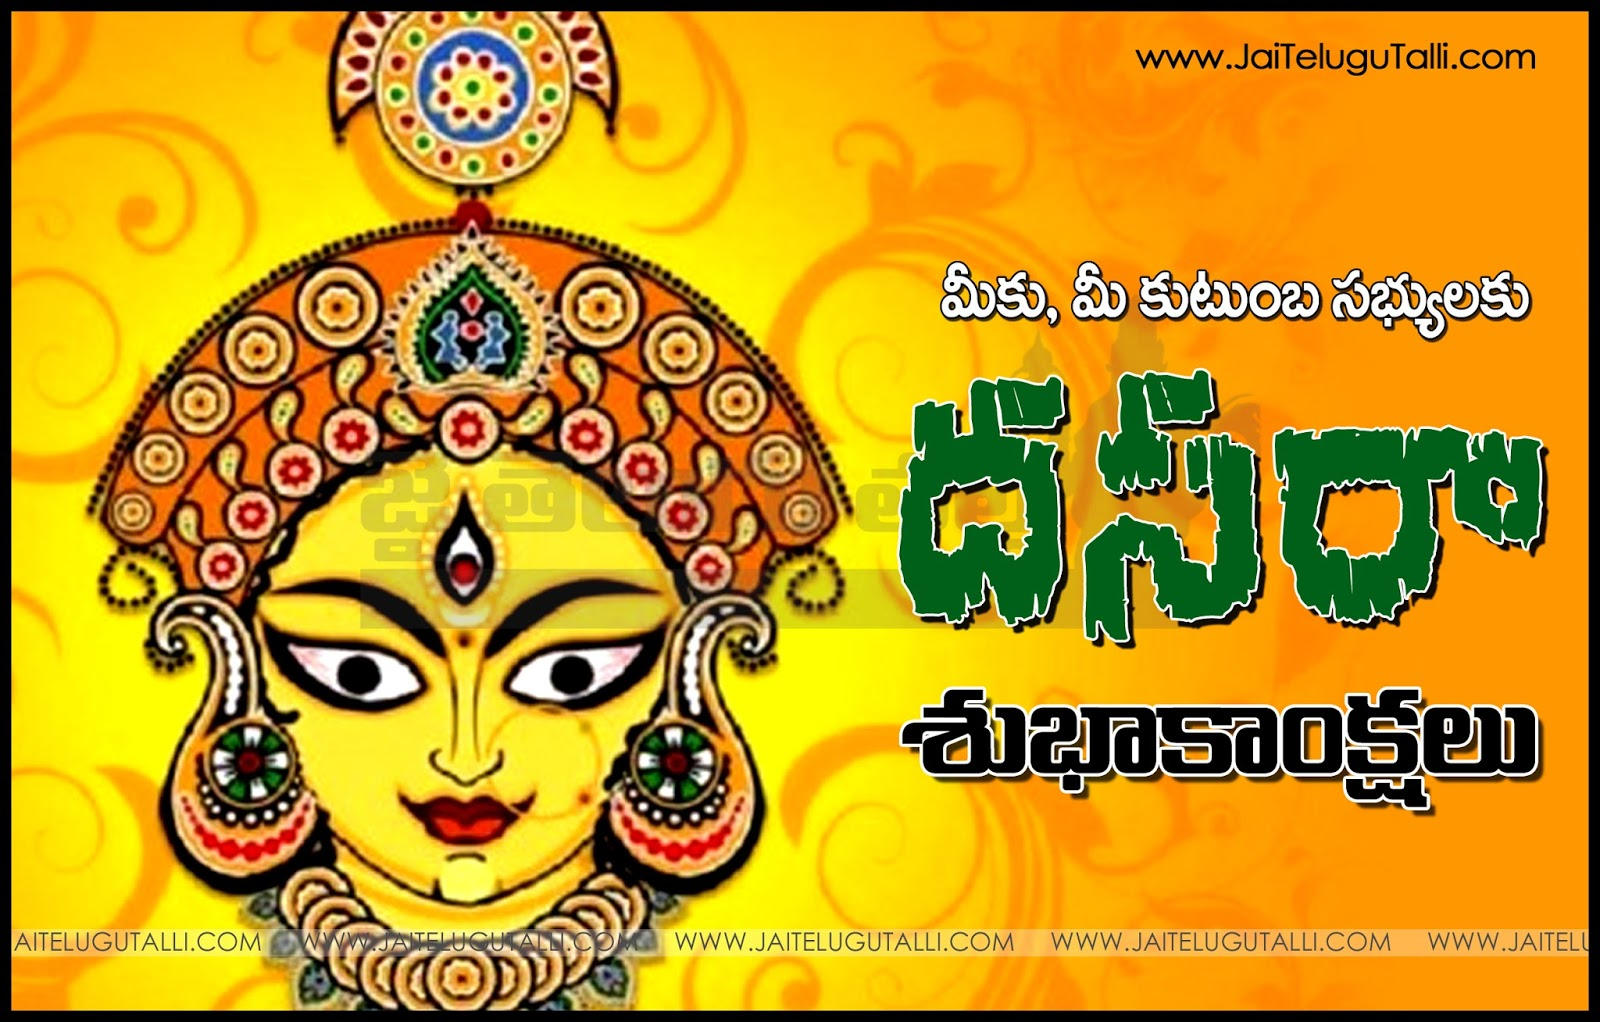 Dussehra wishes telugu greetings images jaitelugutalli here is a happy dussehra telugu greetingshappy dussehra 2016 quotes sms messages m4hsunfo